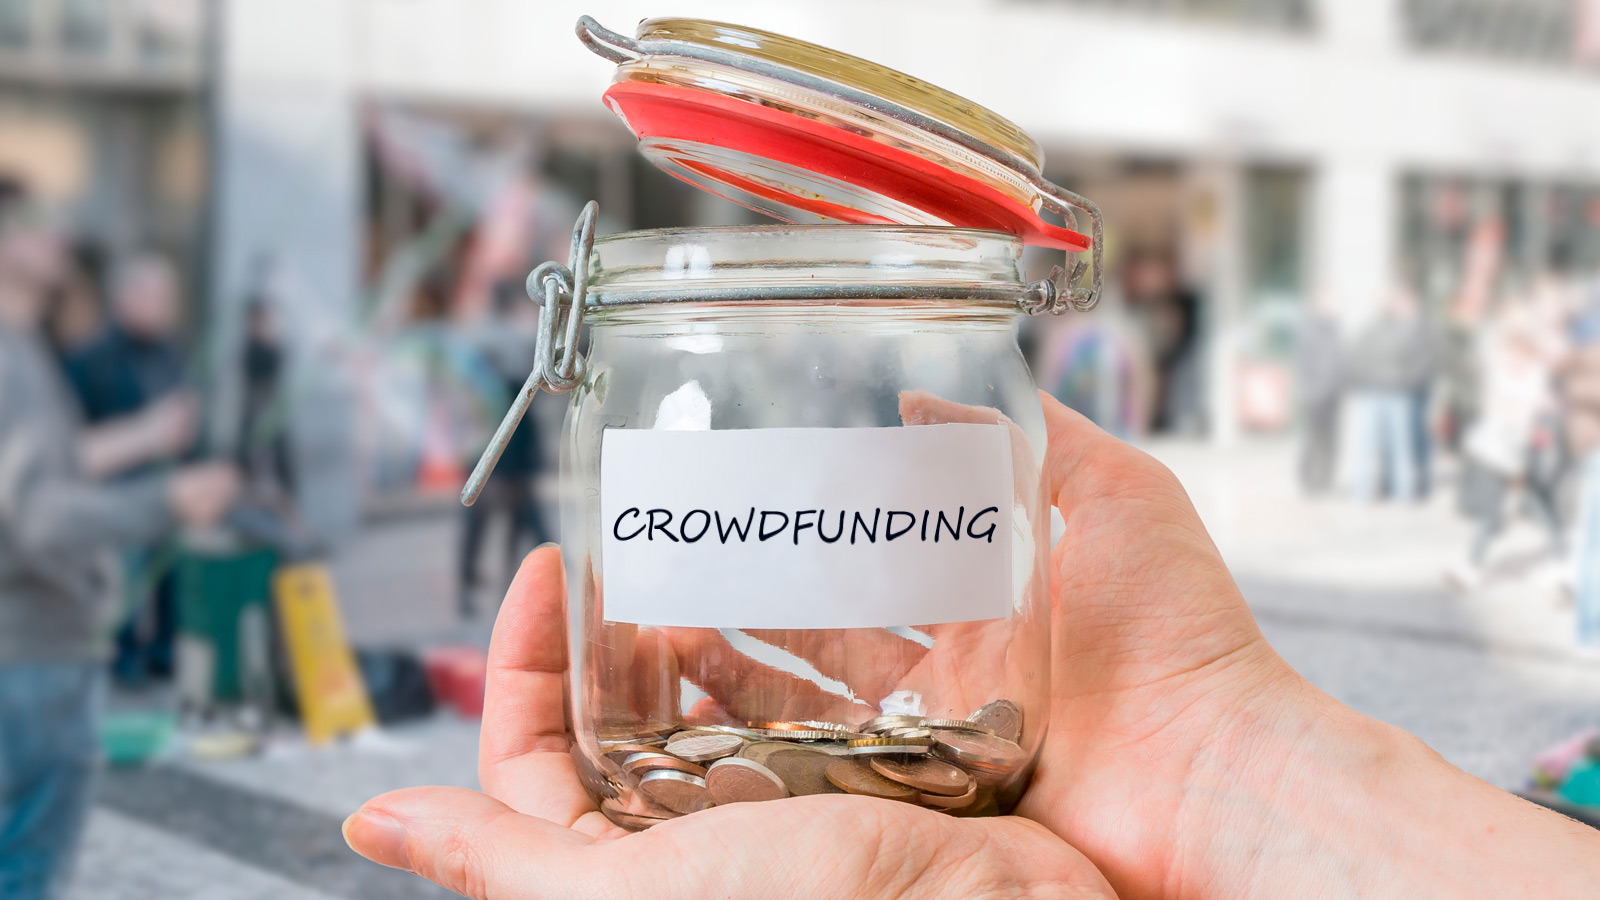 Os riscos do crowdfunding